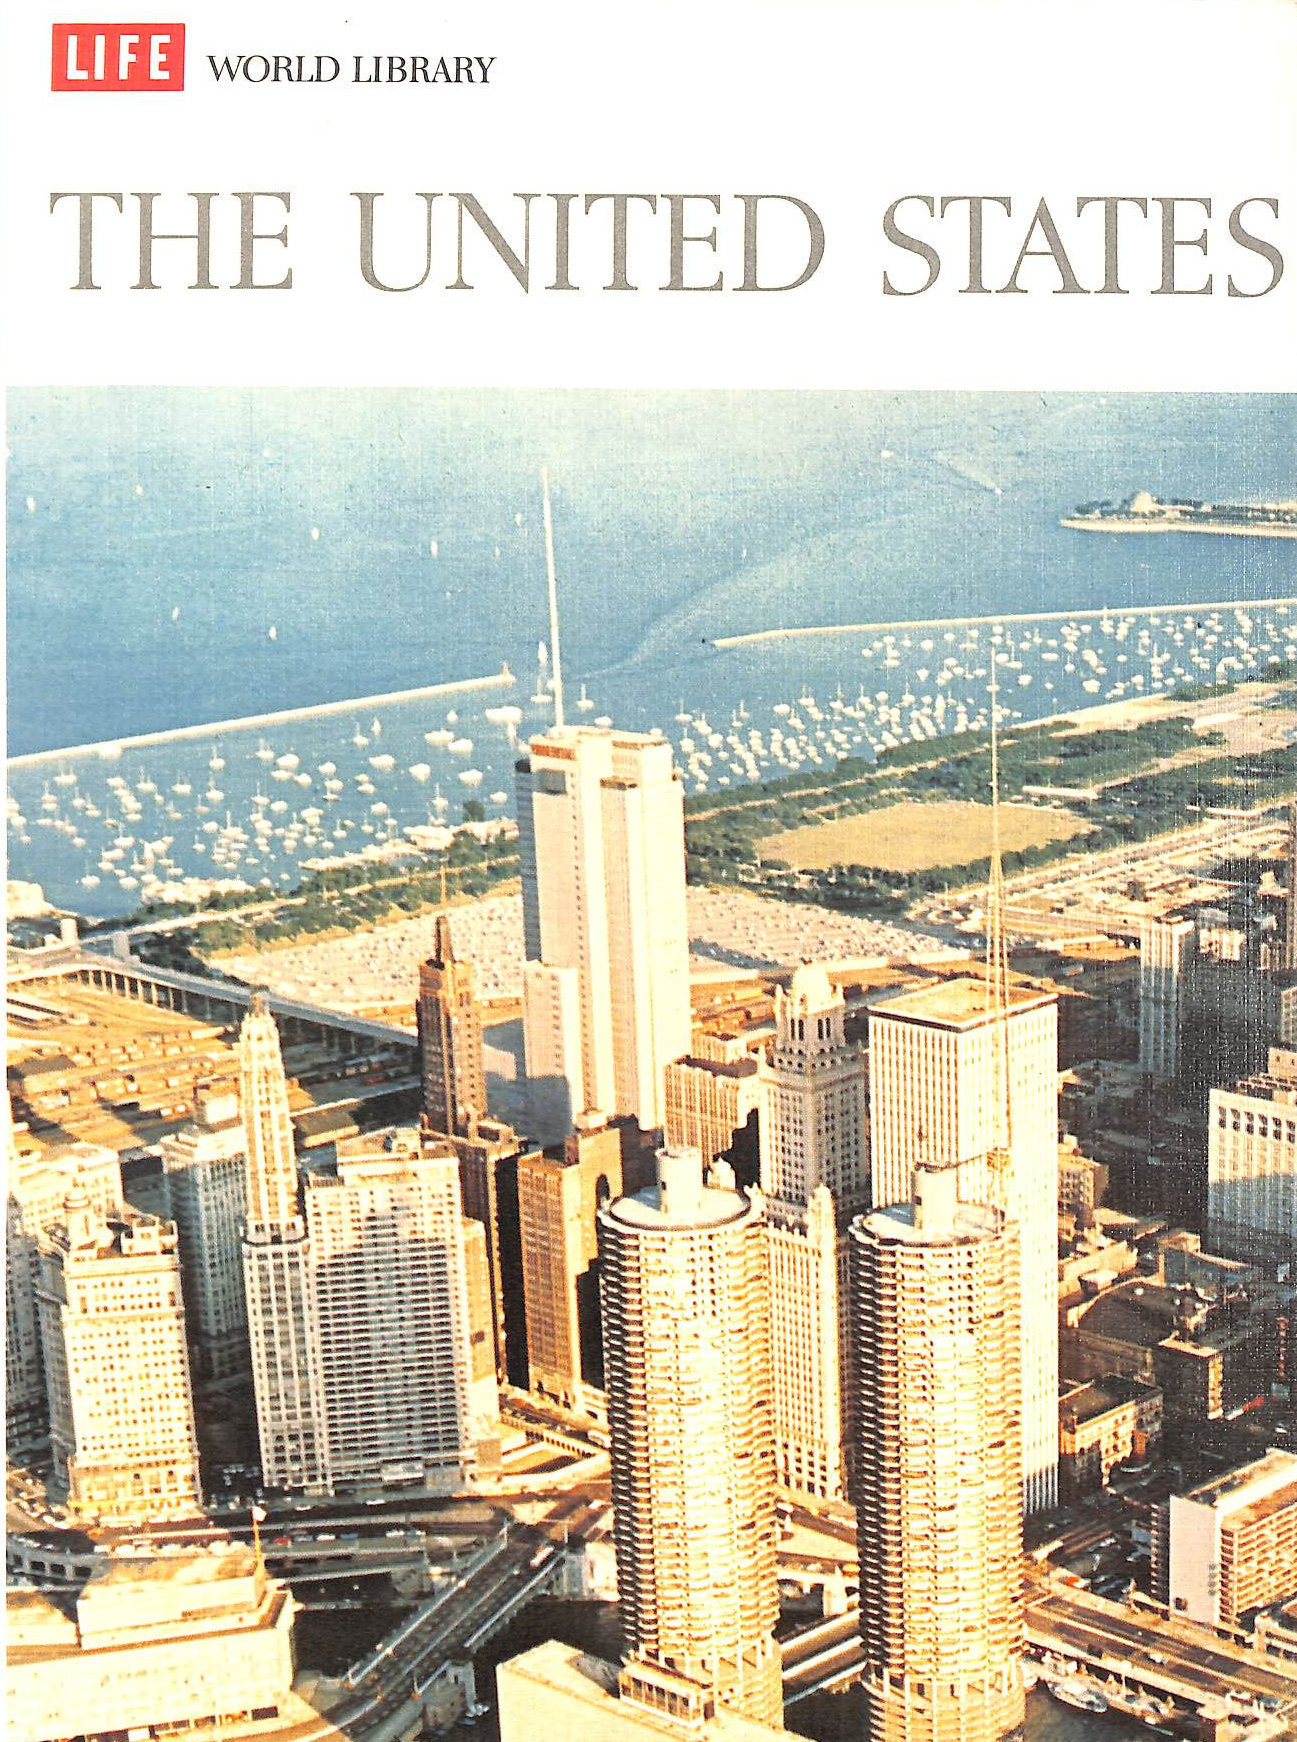 Image for LIFE WORLD LIBRARY, THE UNITED STATES (LIFE WORLD LIBRARY)